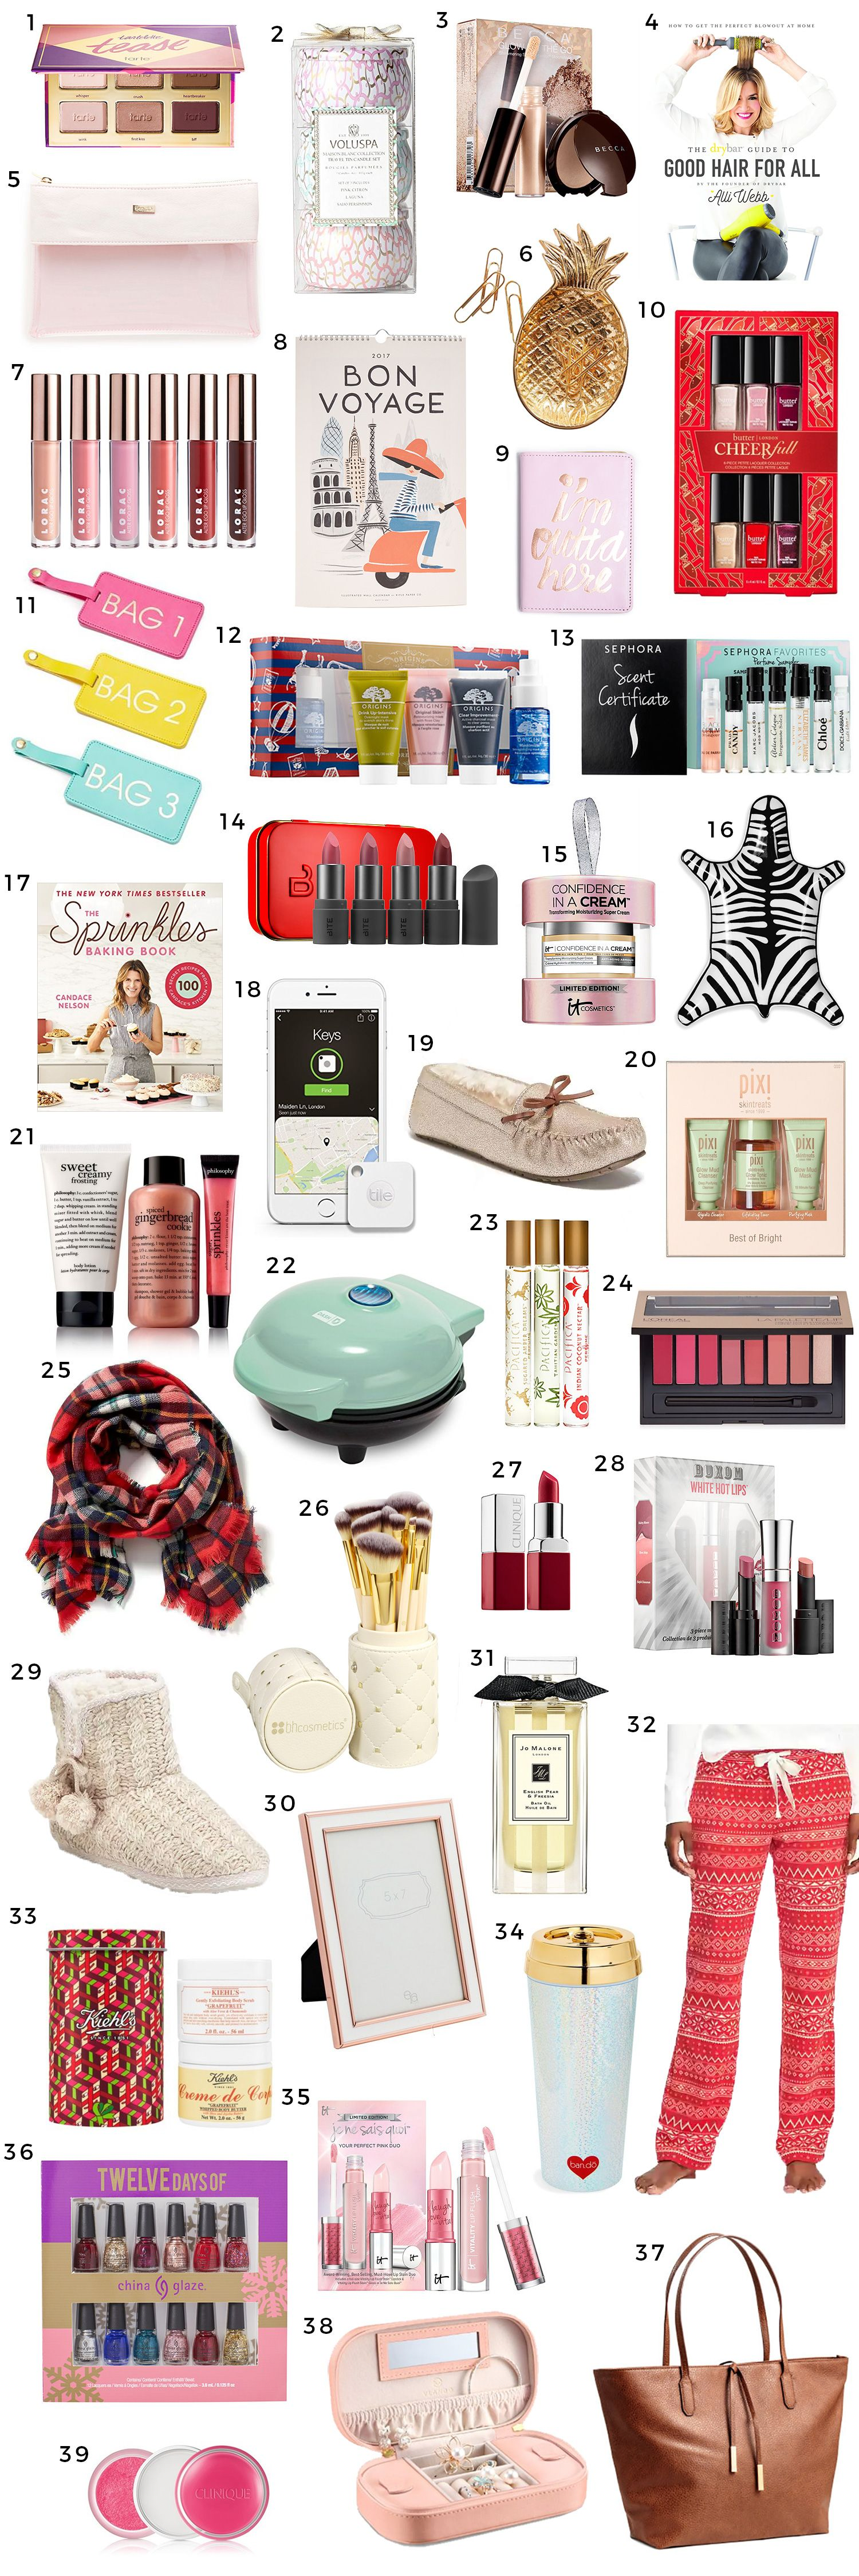 Best christmas gifts under $25 for women